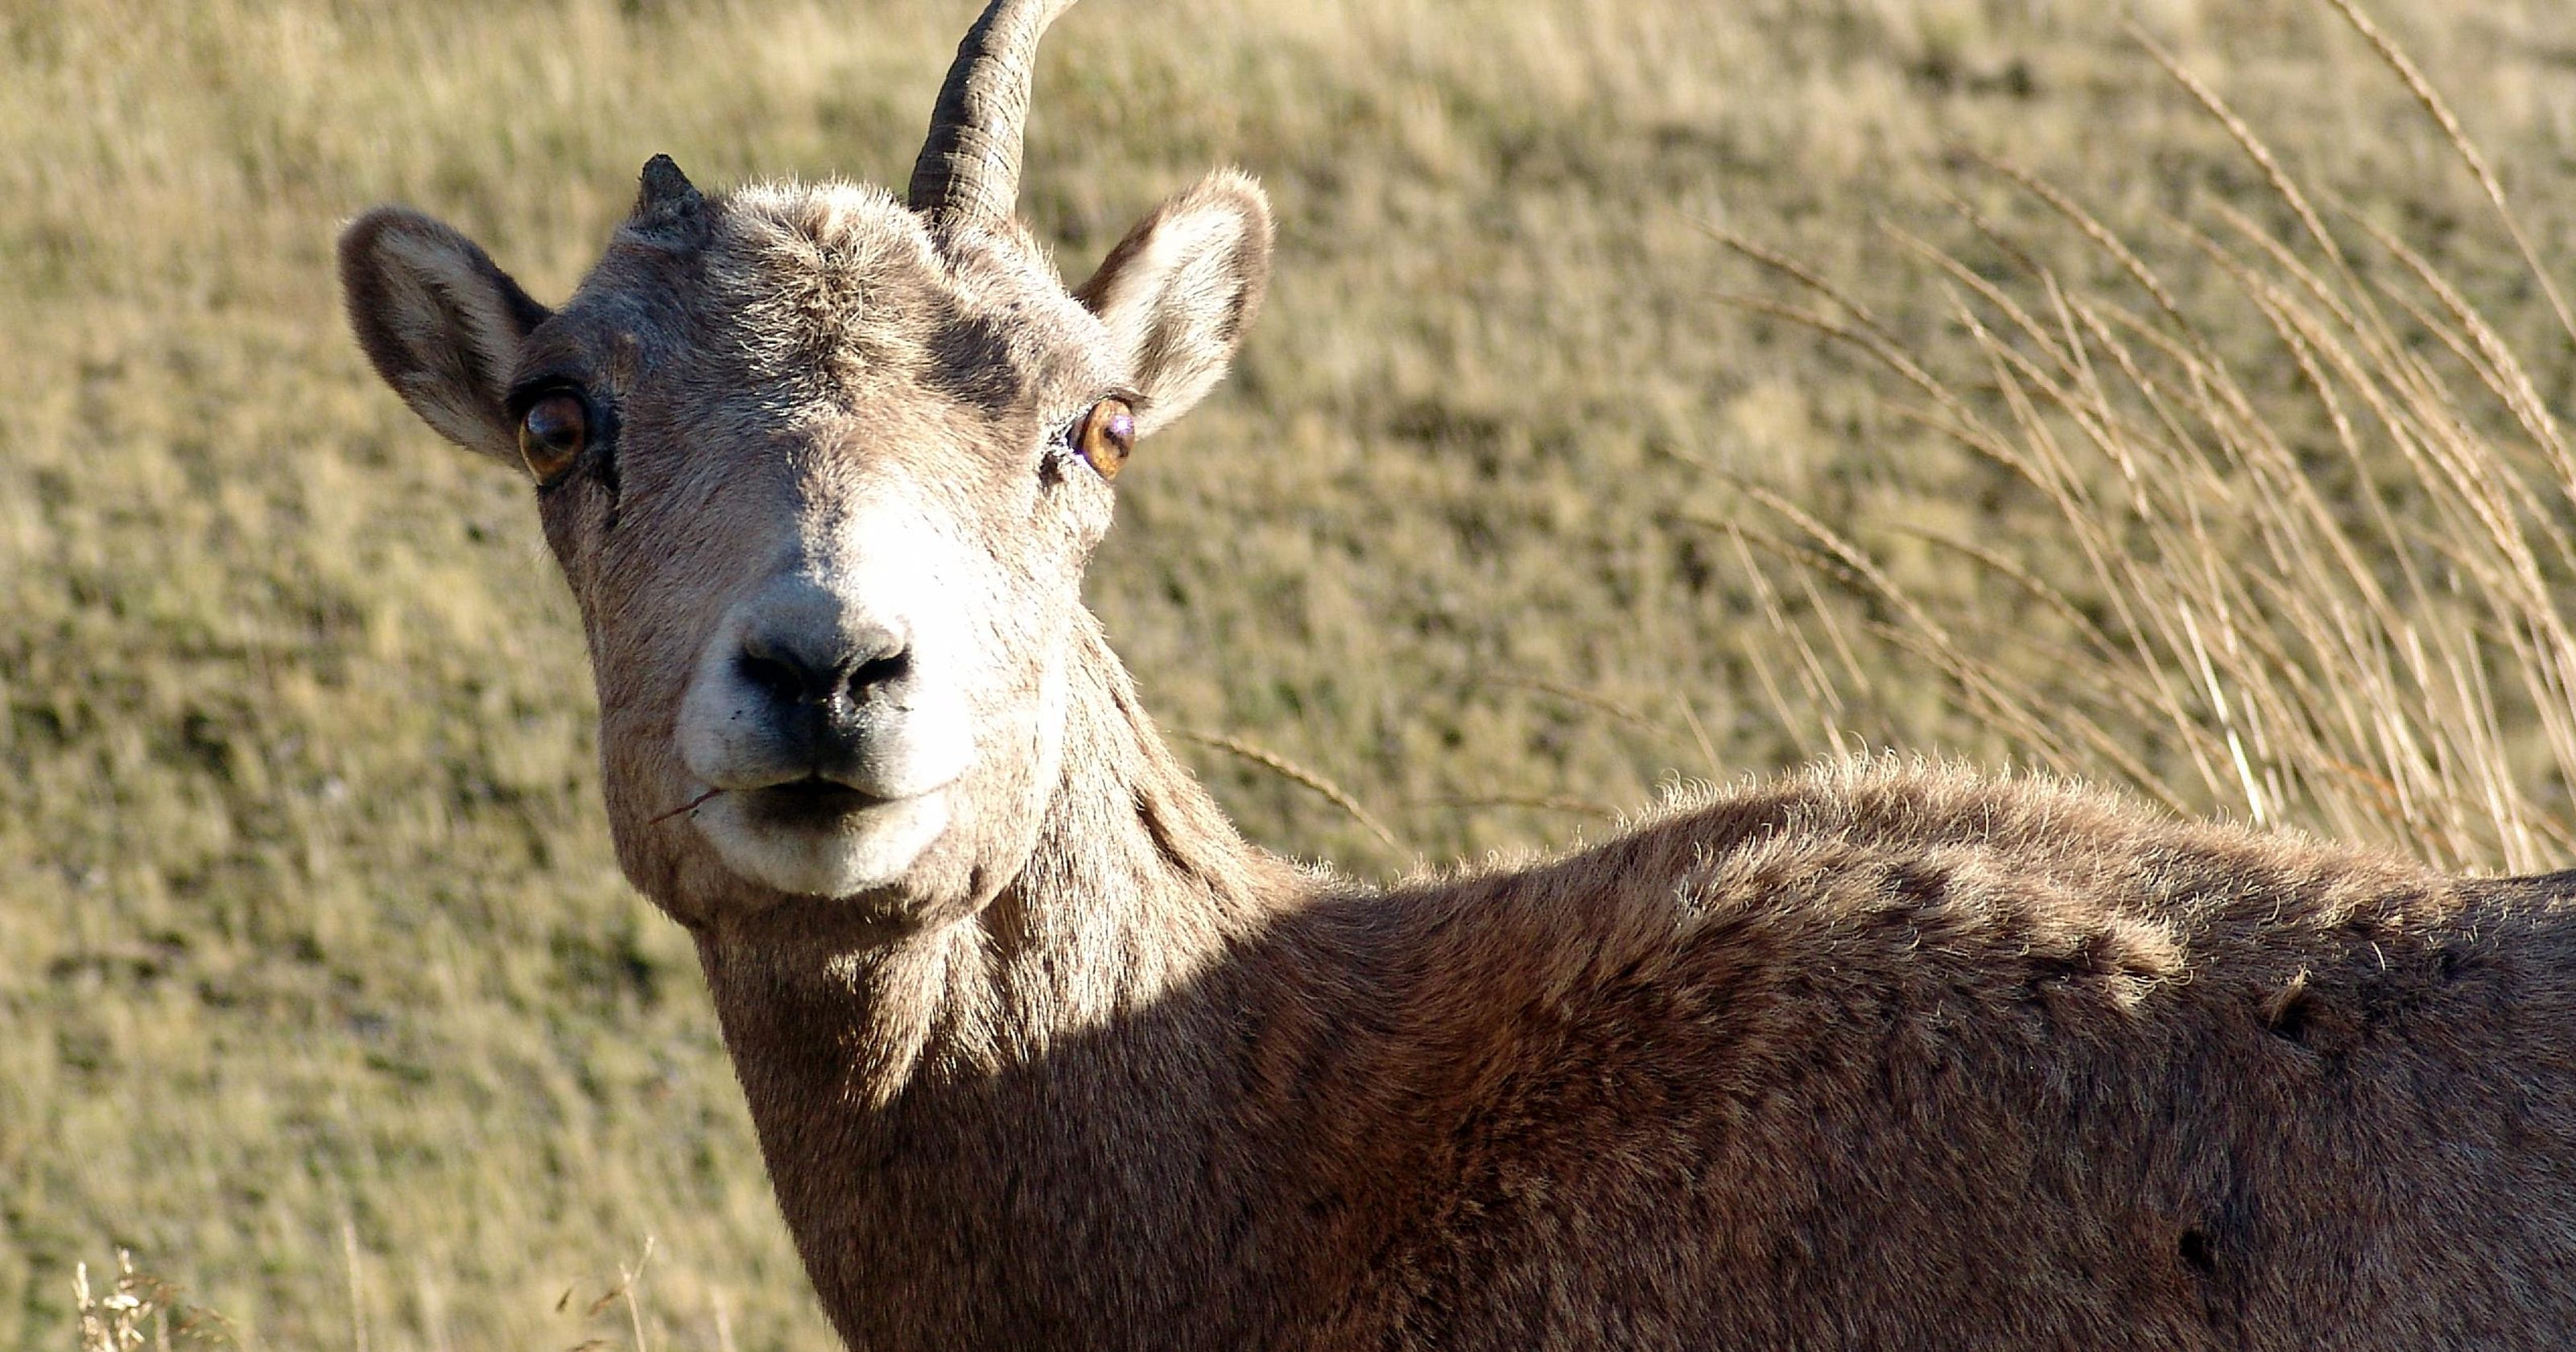 Four wild sheep shot after mixing with domestic sheep